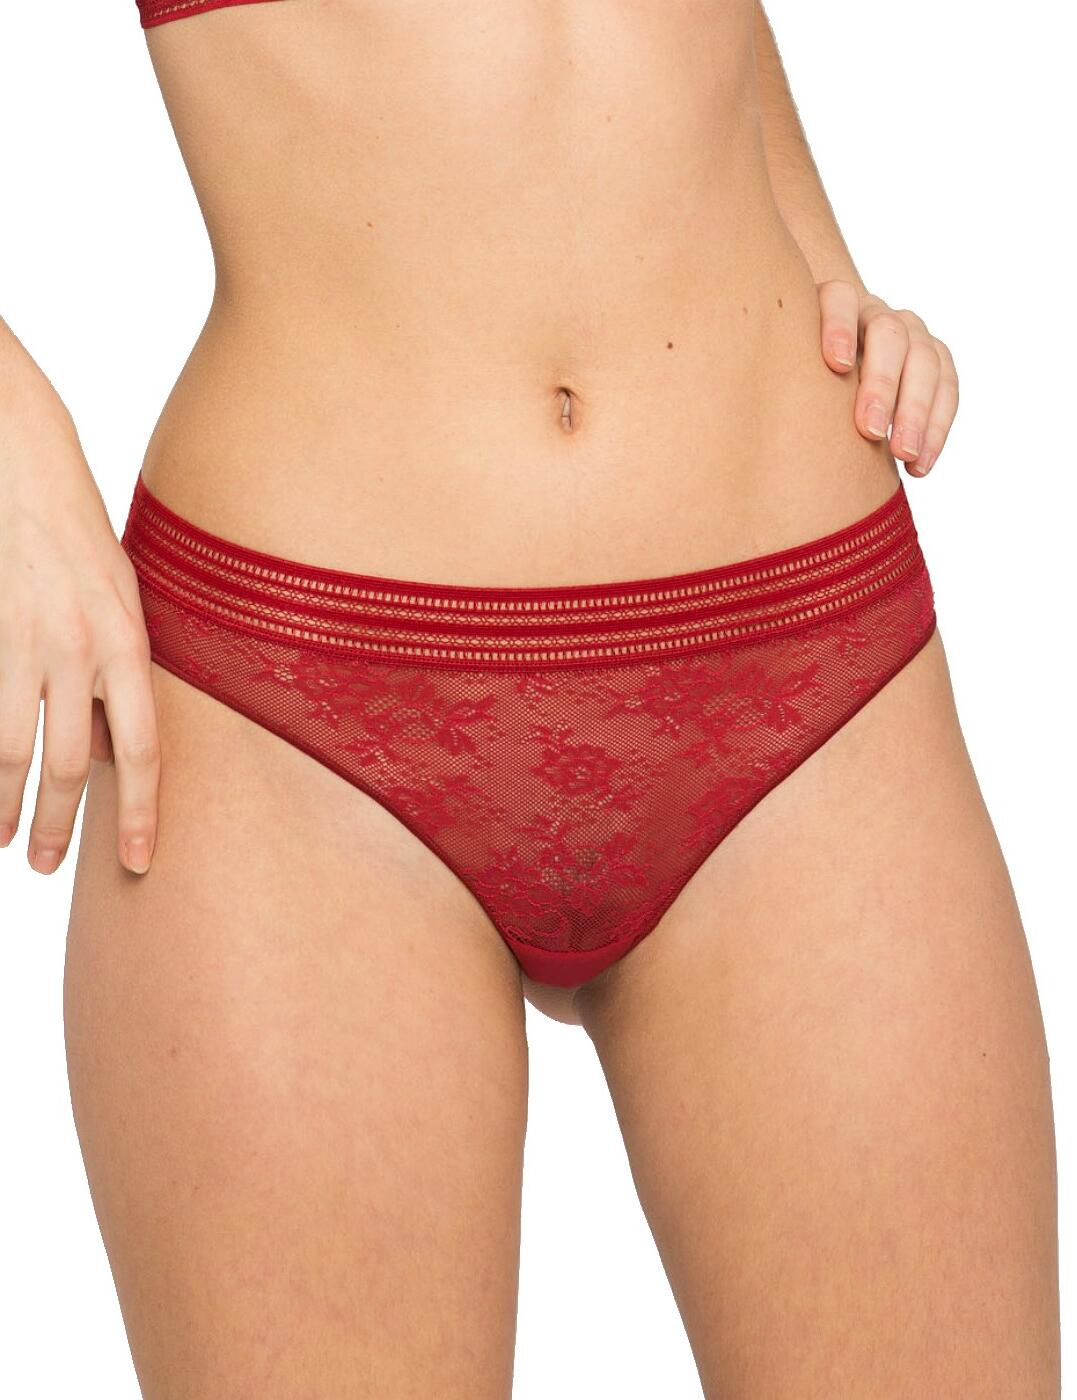 Maison Lejaby Miss Lejaby Tanga Brief 16462 New Lingerie Womens Lace Knickers